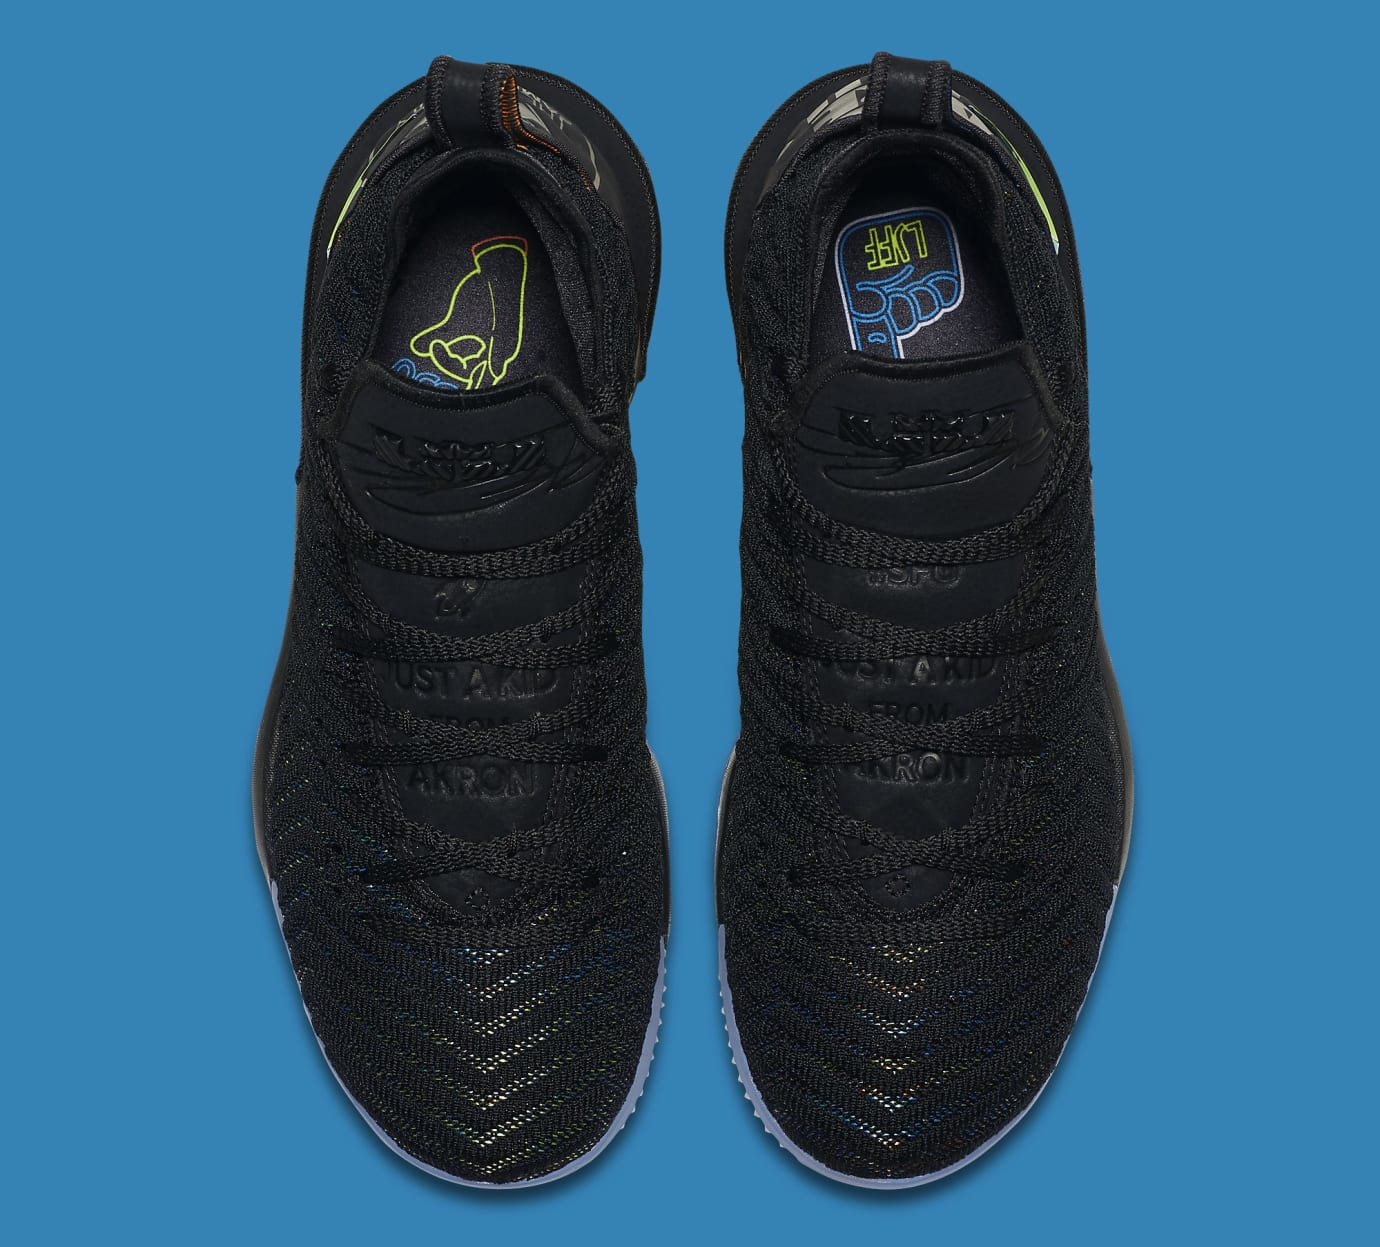 cheap for discount 86ffe 61b9e Image via Nike Nike LeBron 16 I Promise Release Date AO2595-004 Top